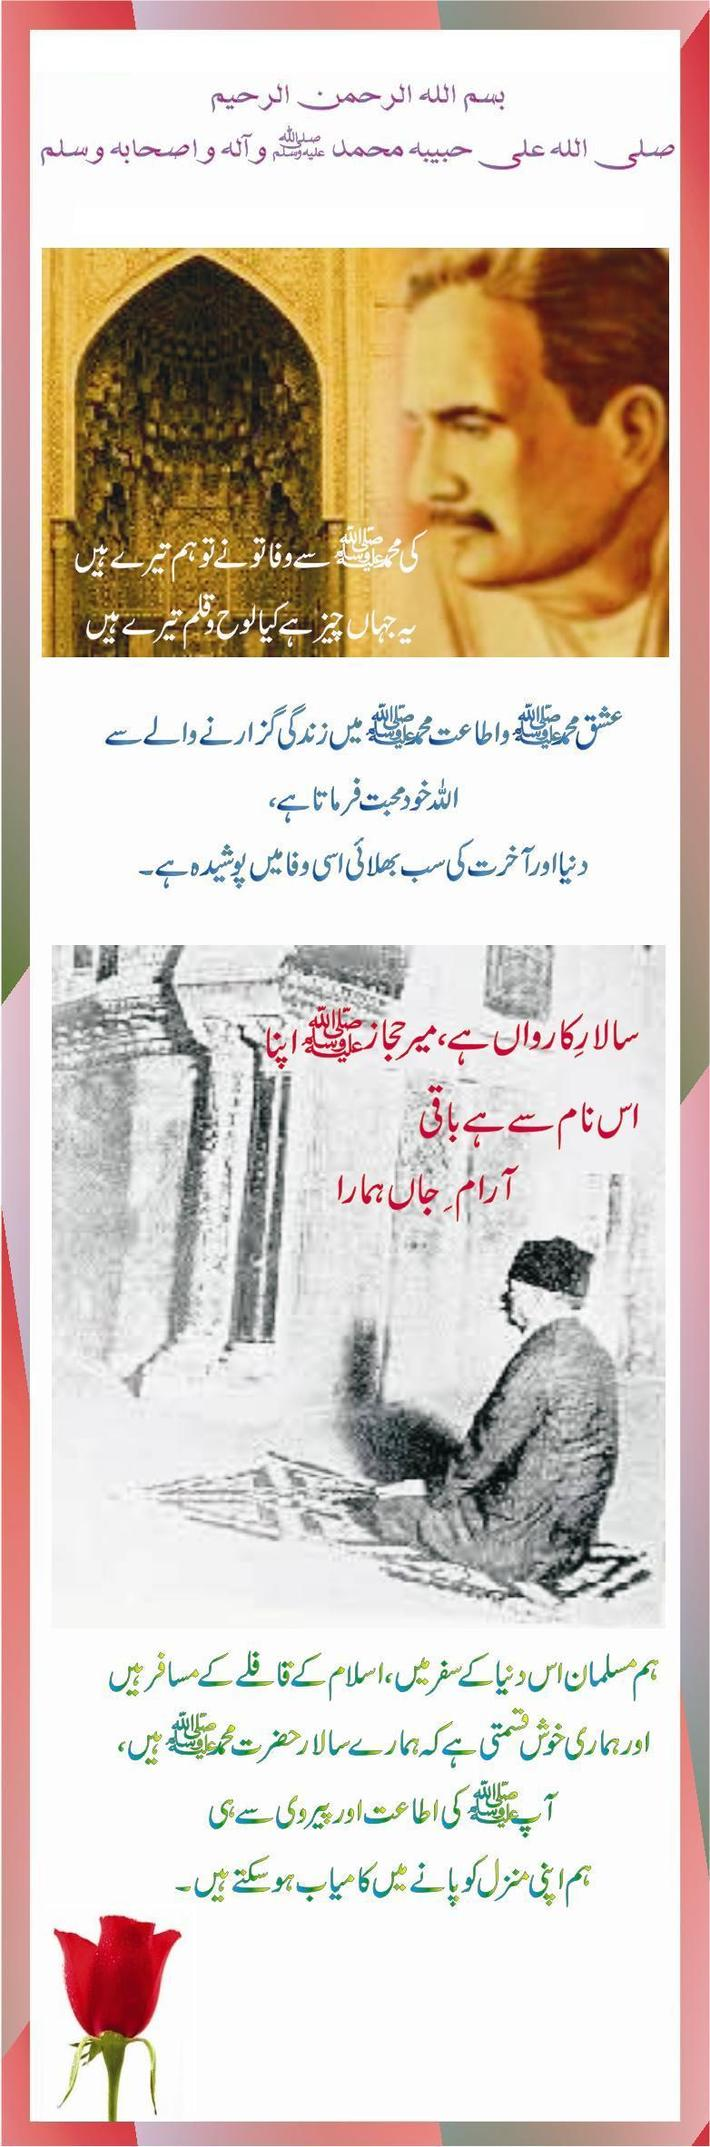 Poetry of Allama Mohammad Iqbal